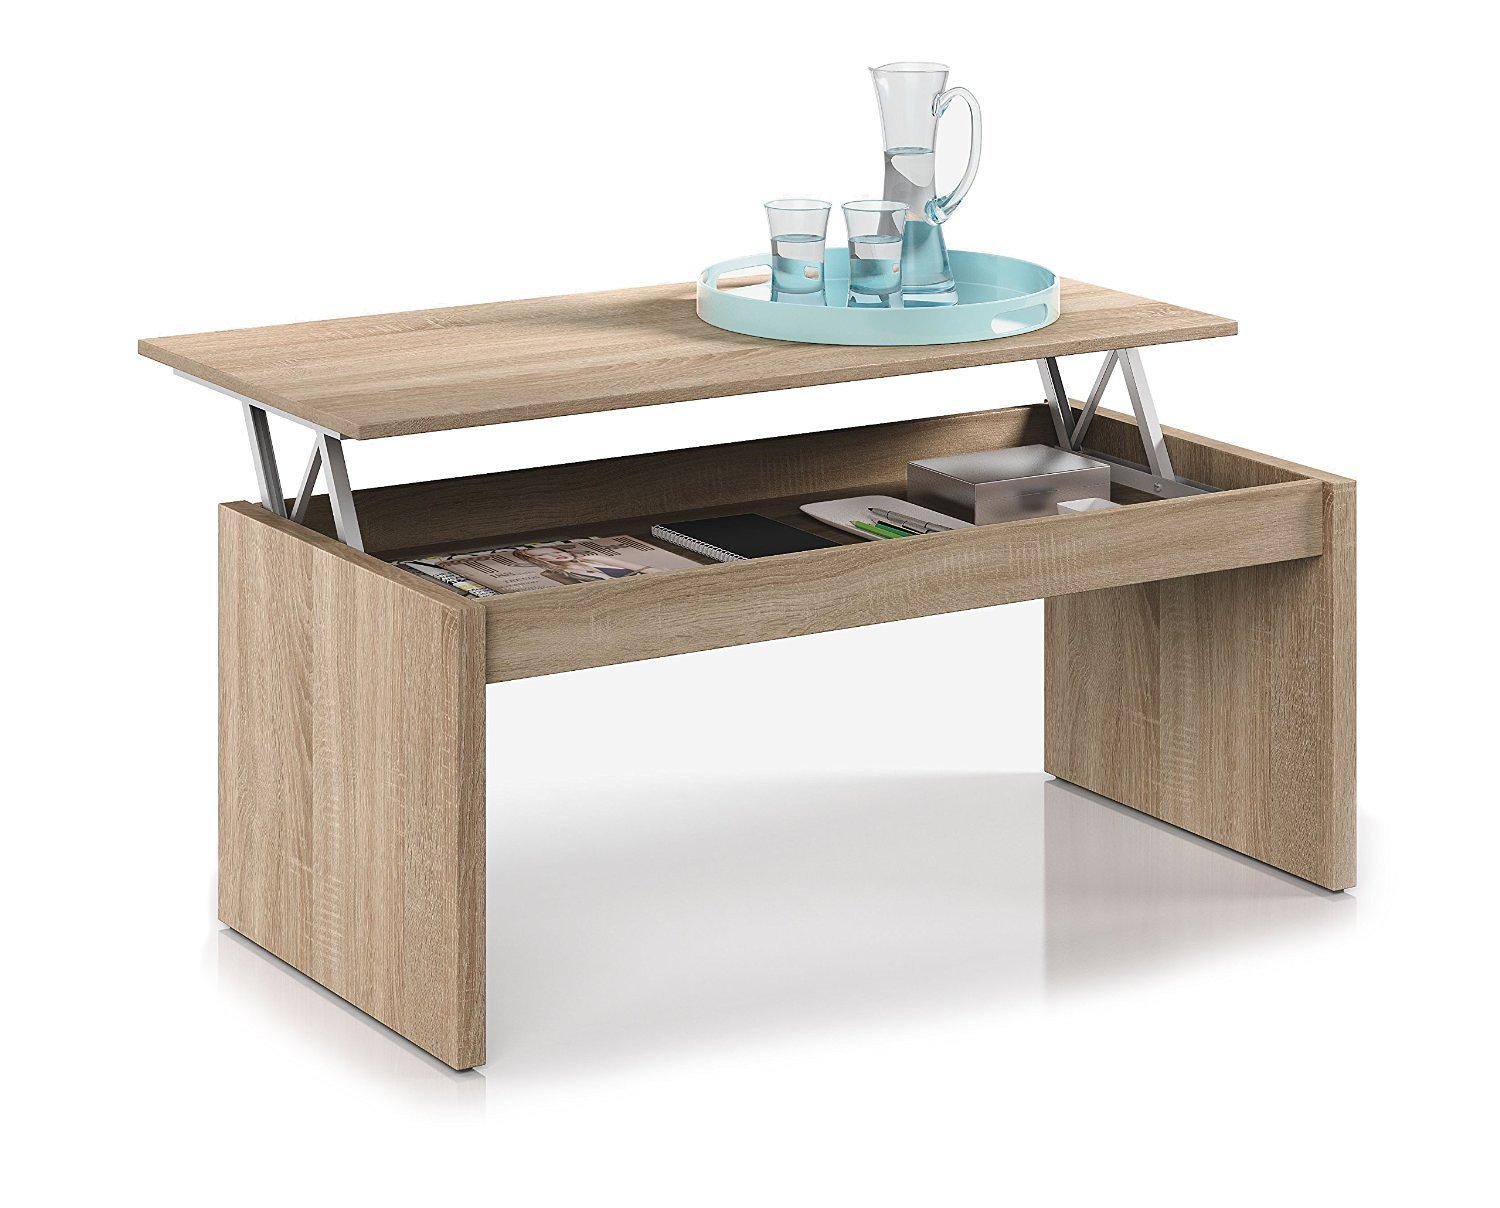 fabulous habitdesign f table basse chne naturel avec plateau relevable with table basse bar ikea